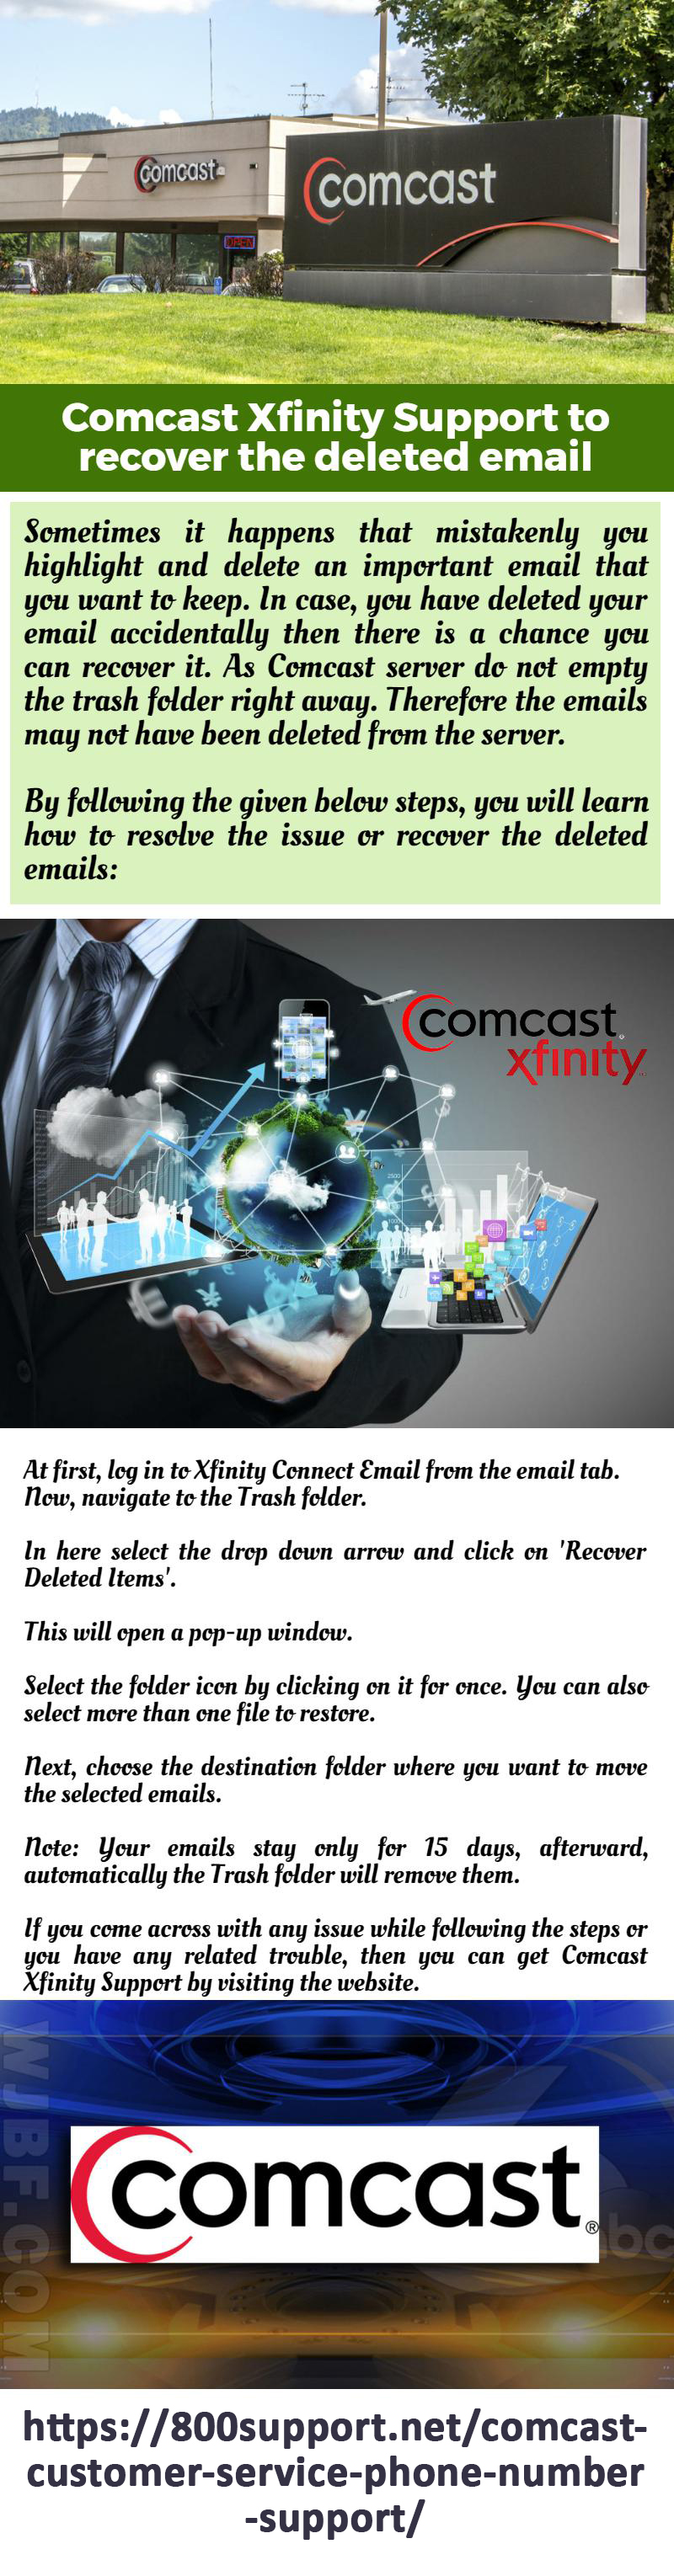 Comcast Customer Service Phone Number Xfinity Support 1